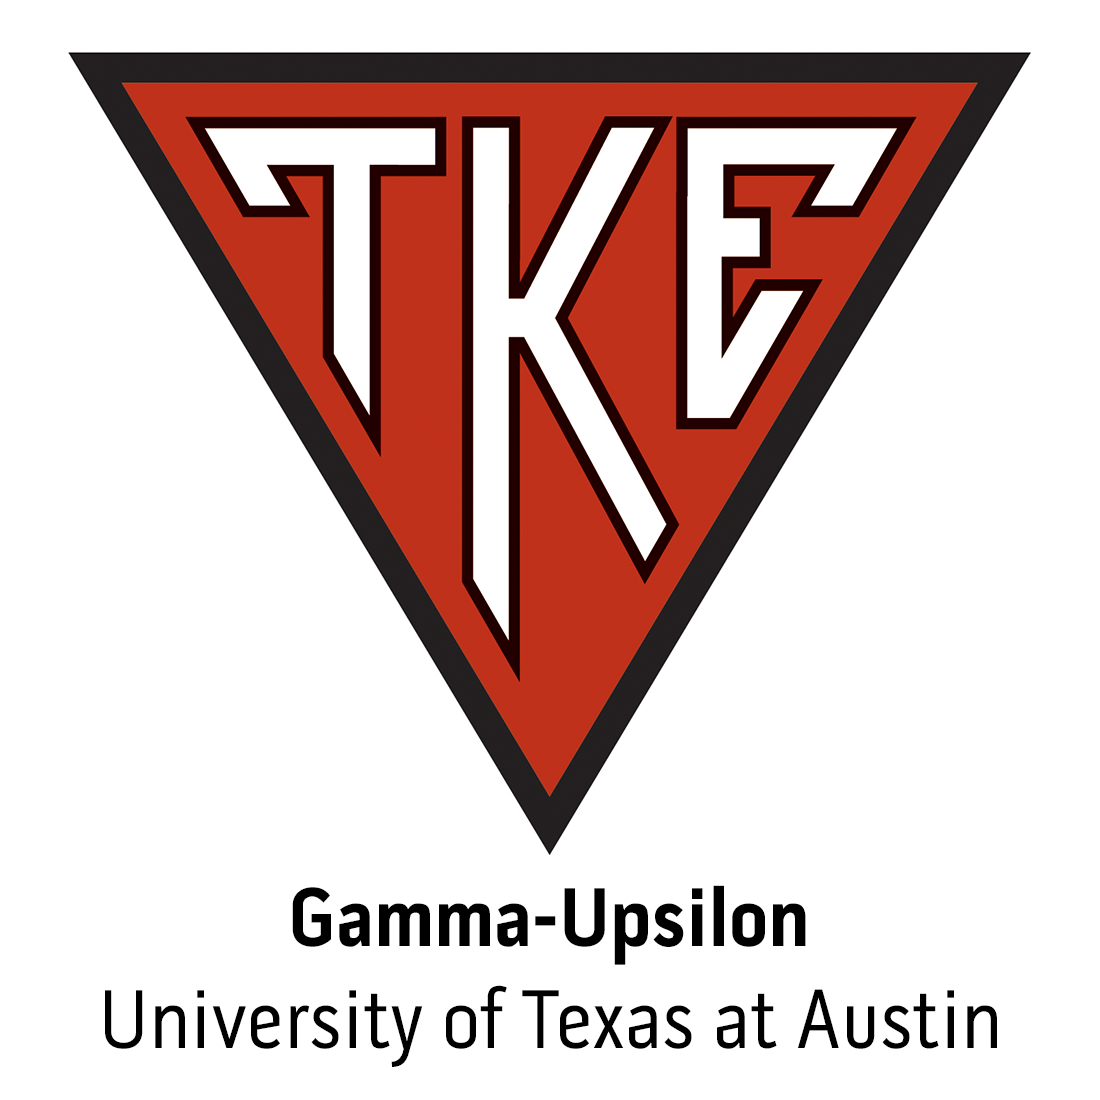 Gamma-Upsilon Chapter at University of Texas at Austin